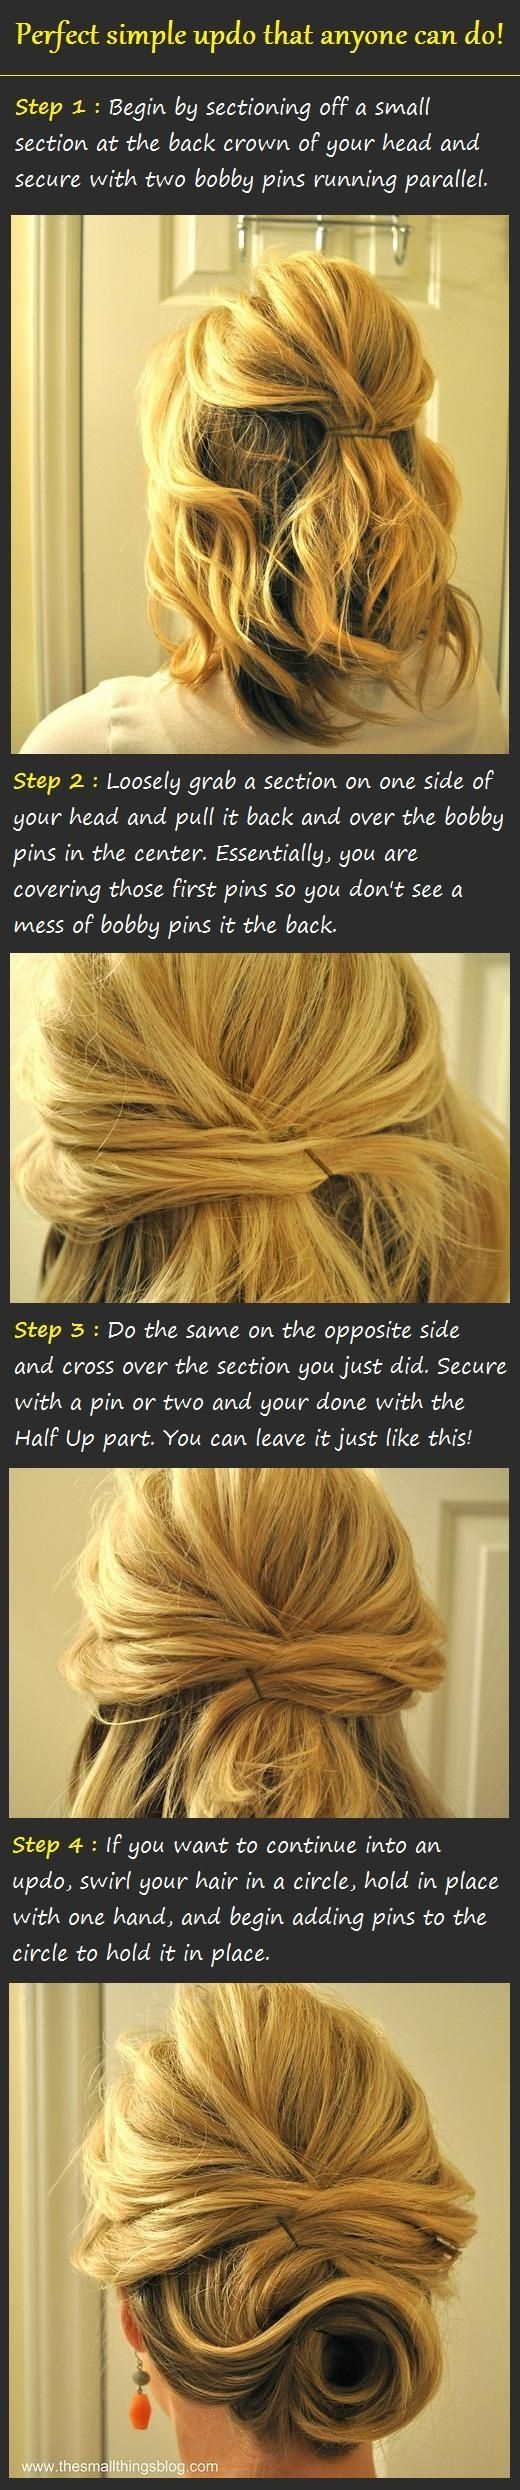 Pretty and Simple Updo Tutorial-hair gets chopped tomorrow, maybe I will try this (read: someone can try this for me)